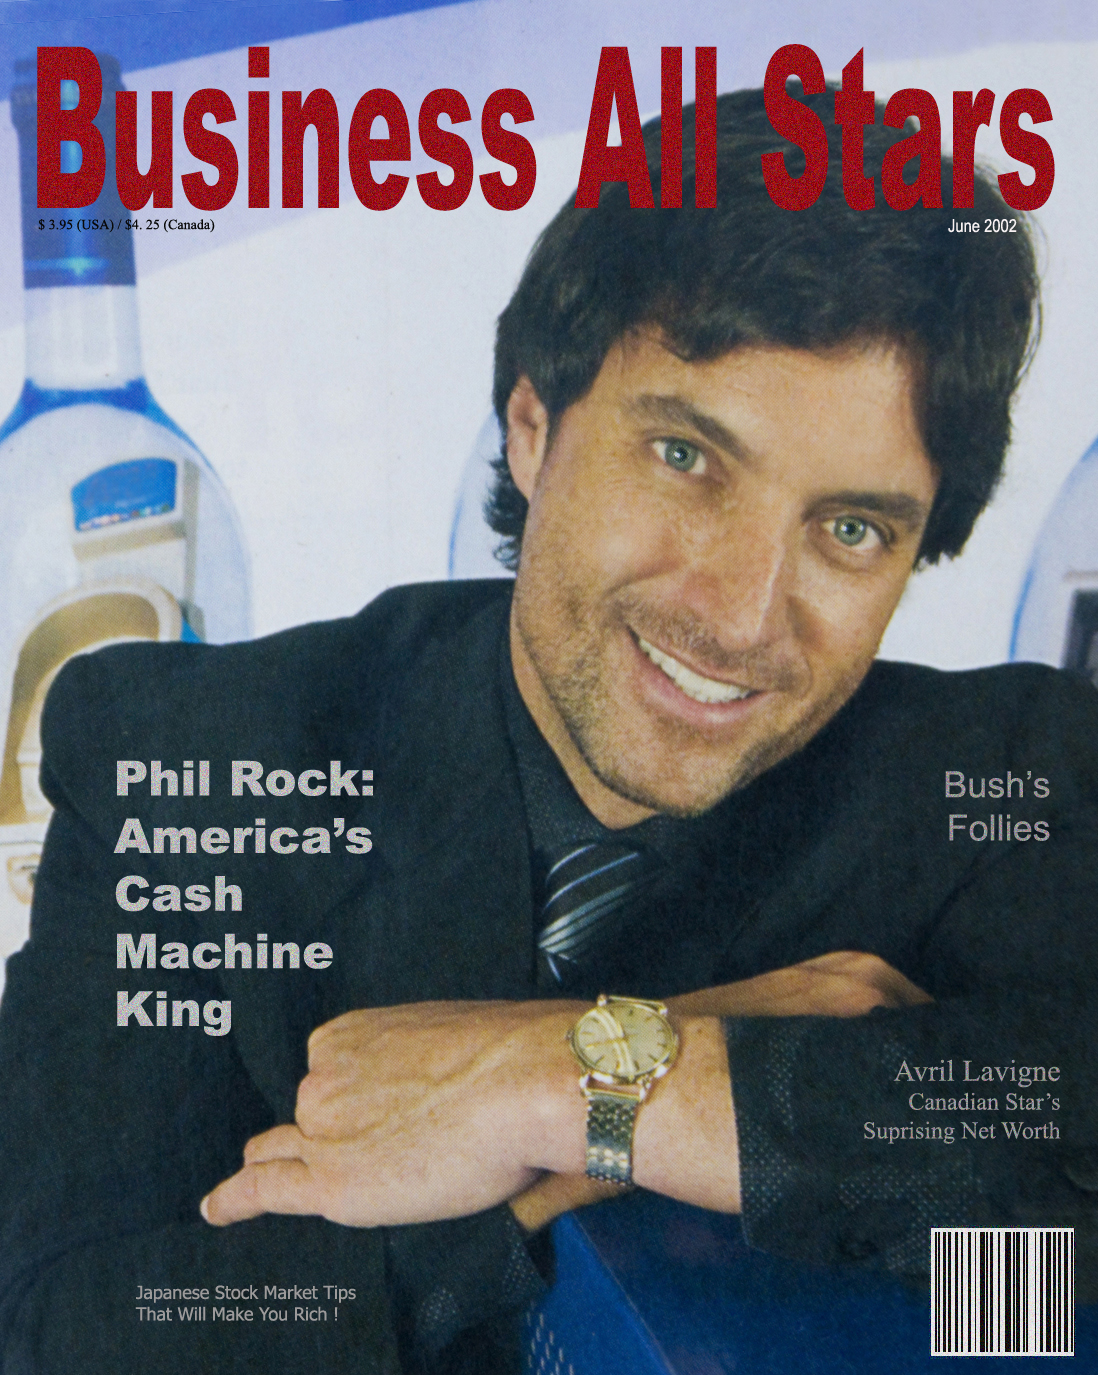 Phil Rock: America's Cash Machine King